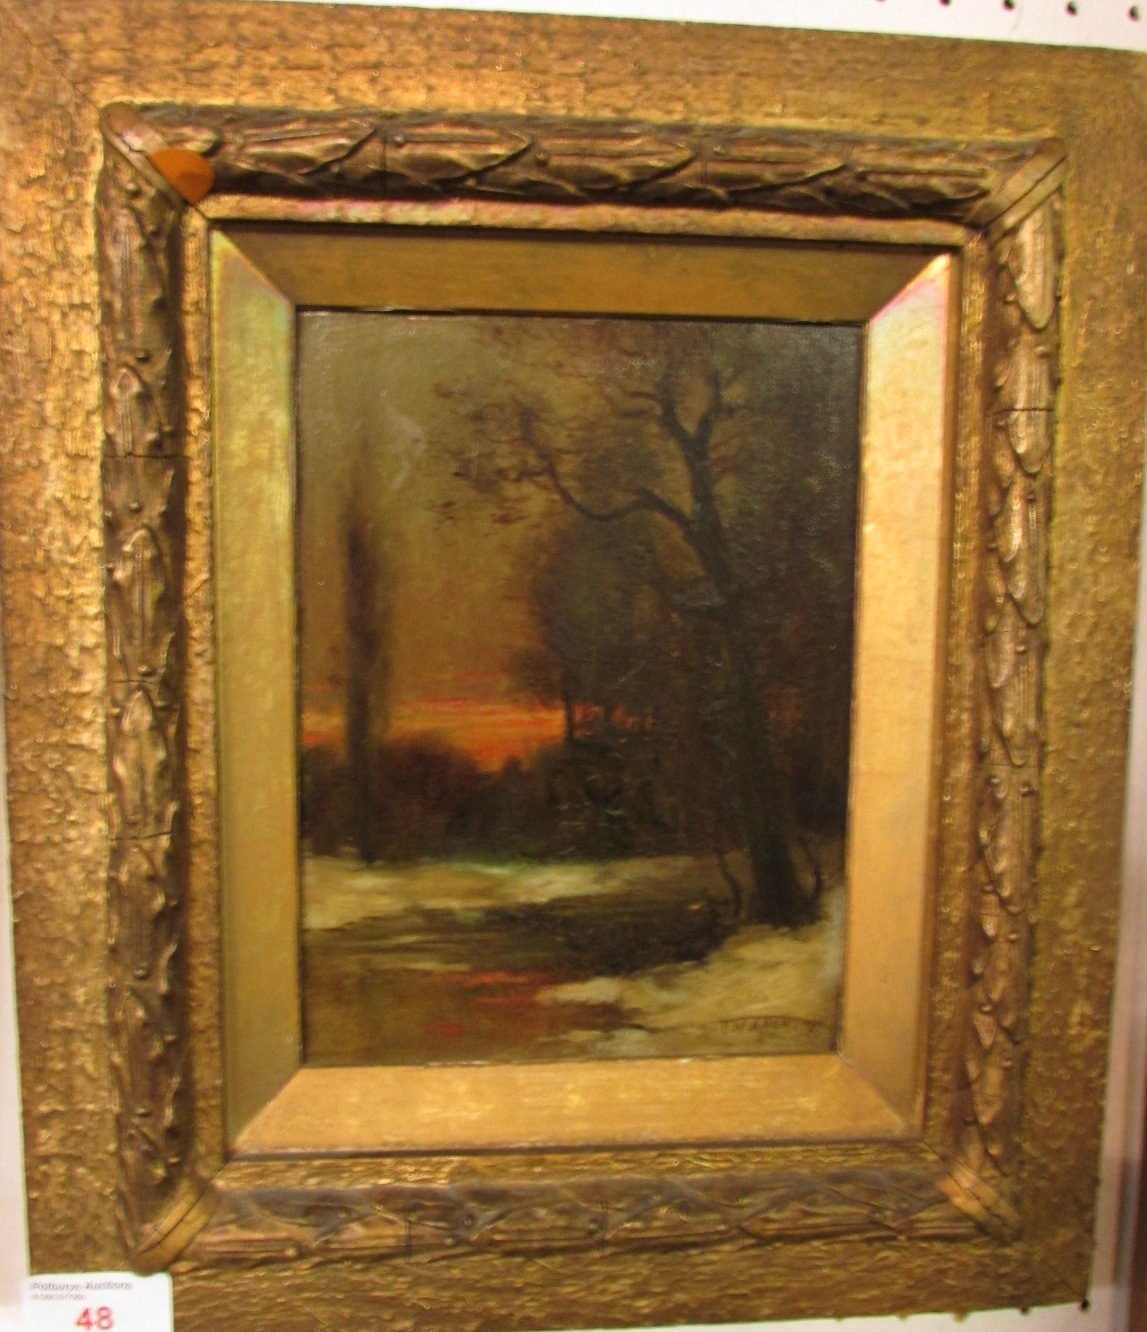 Lot 48 - Winter landscape with red sky and trees, oil on board, signed T.W. Allen lower right with indistinct